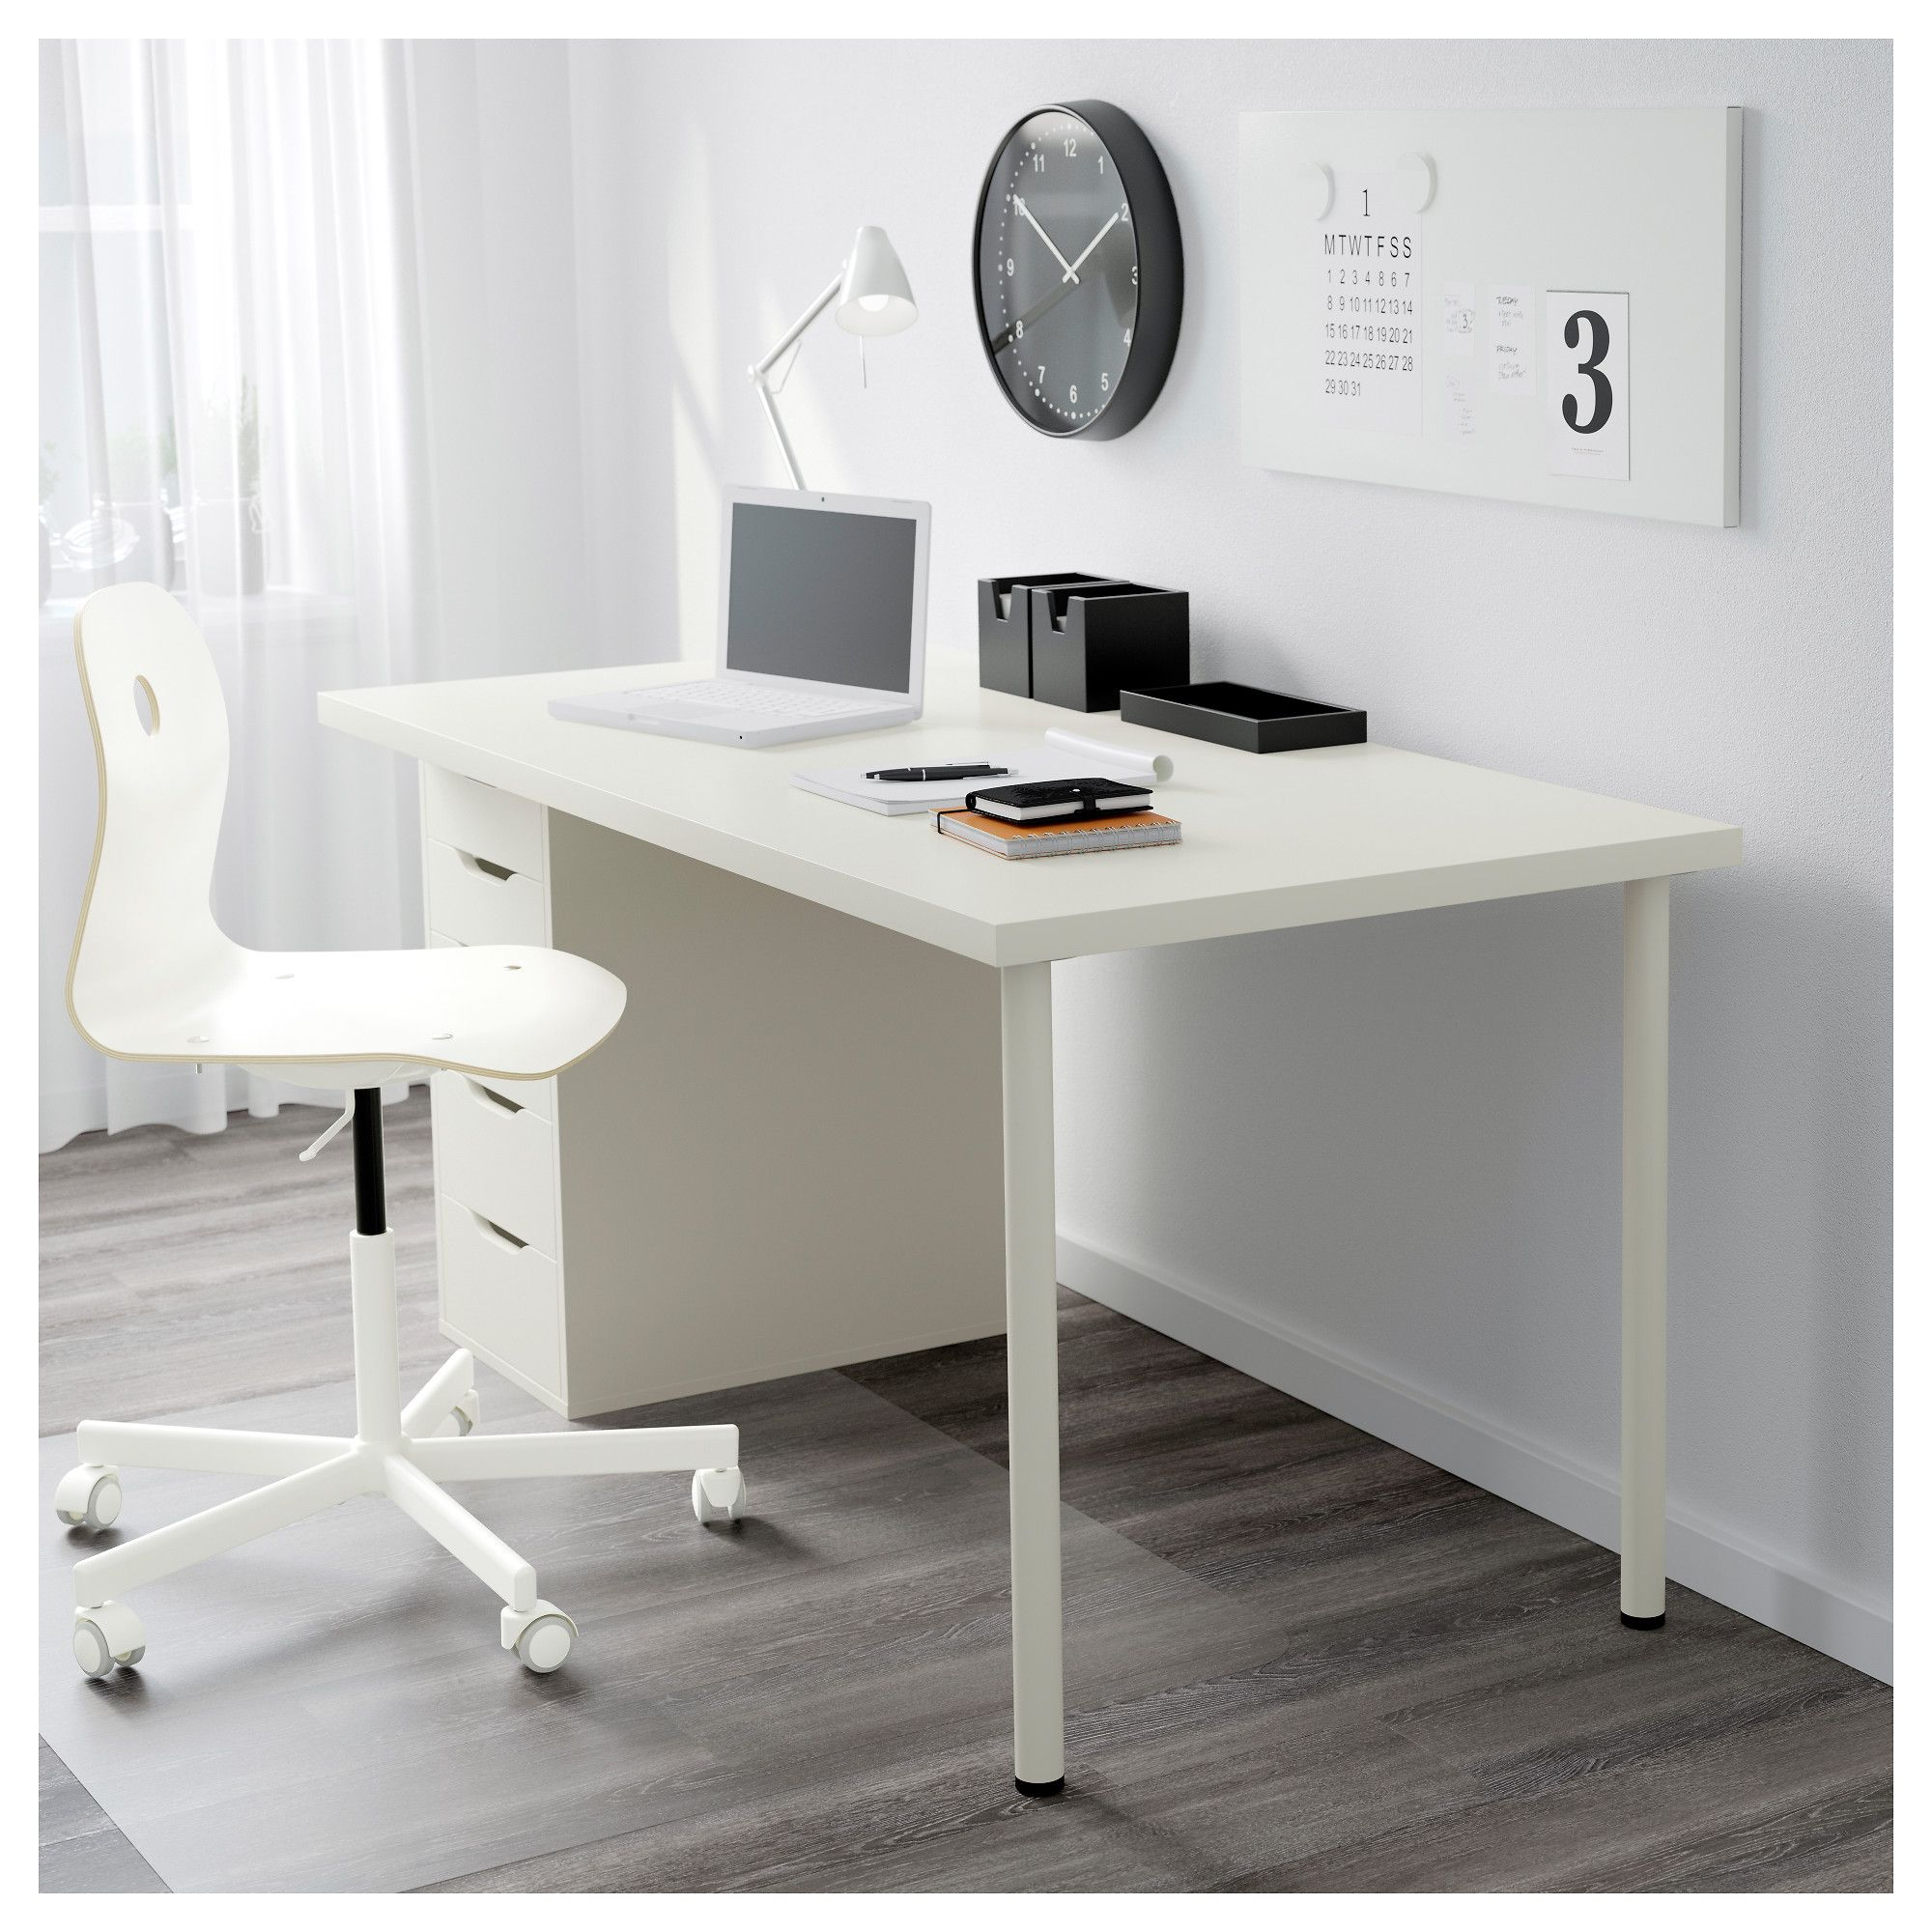 Linnmon Ikea Linnmon Alex Table White In 2019 Products Alex Drawer